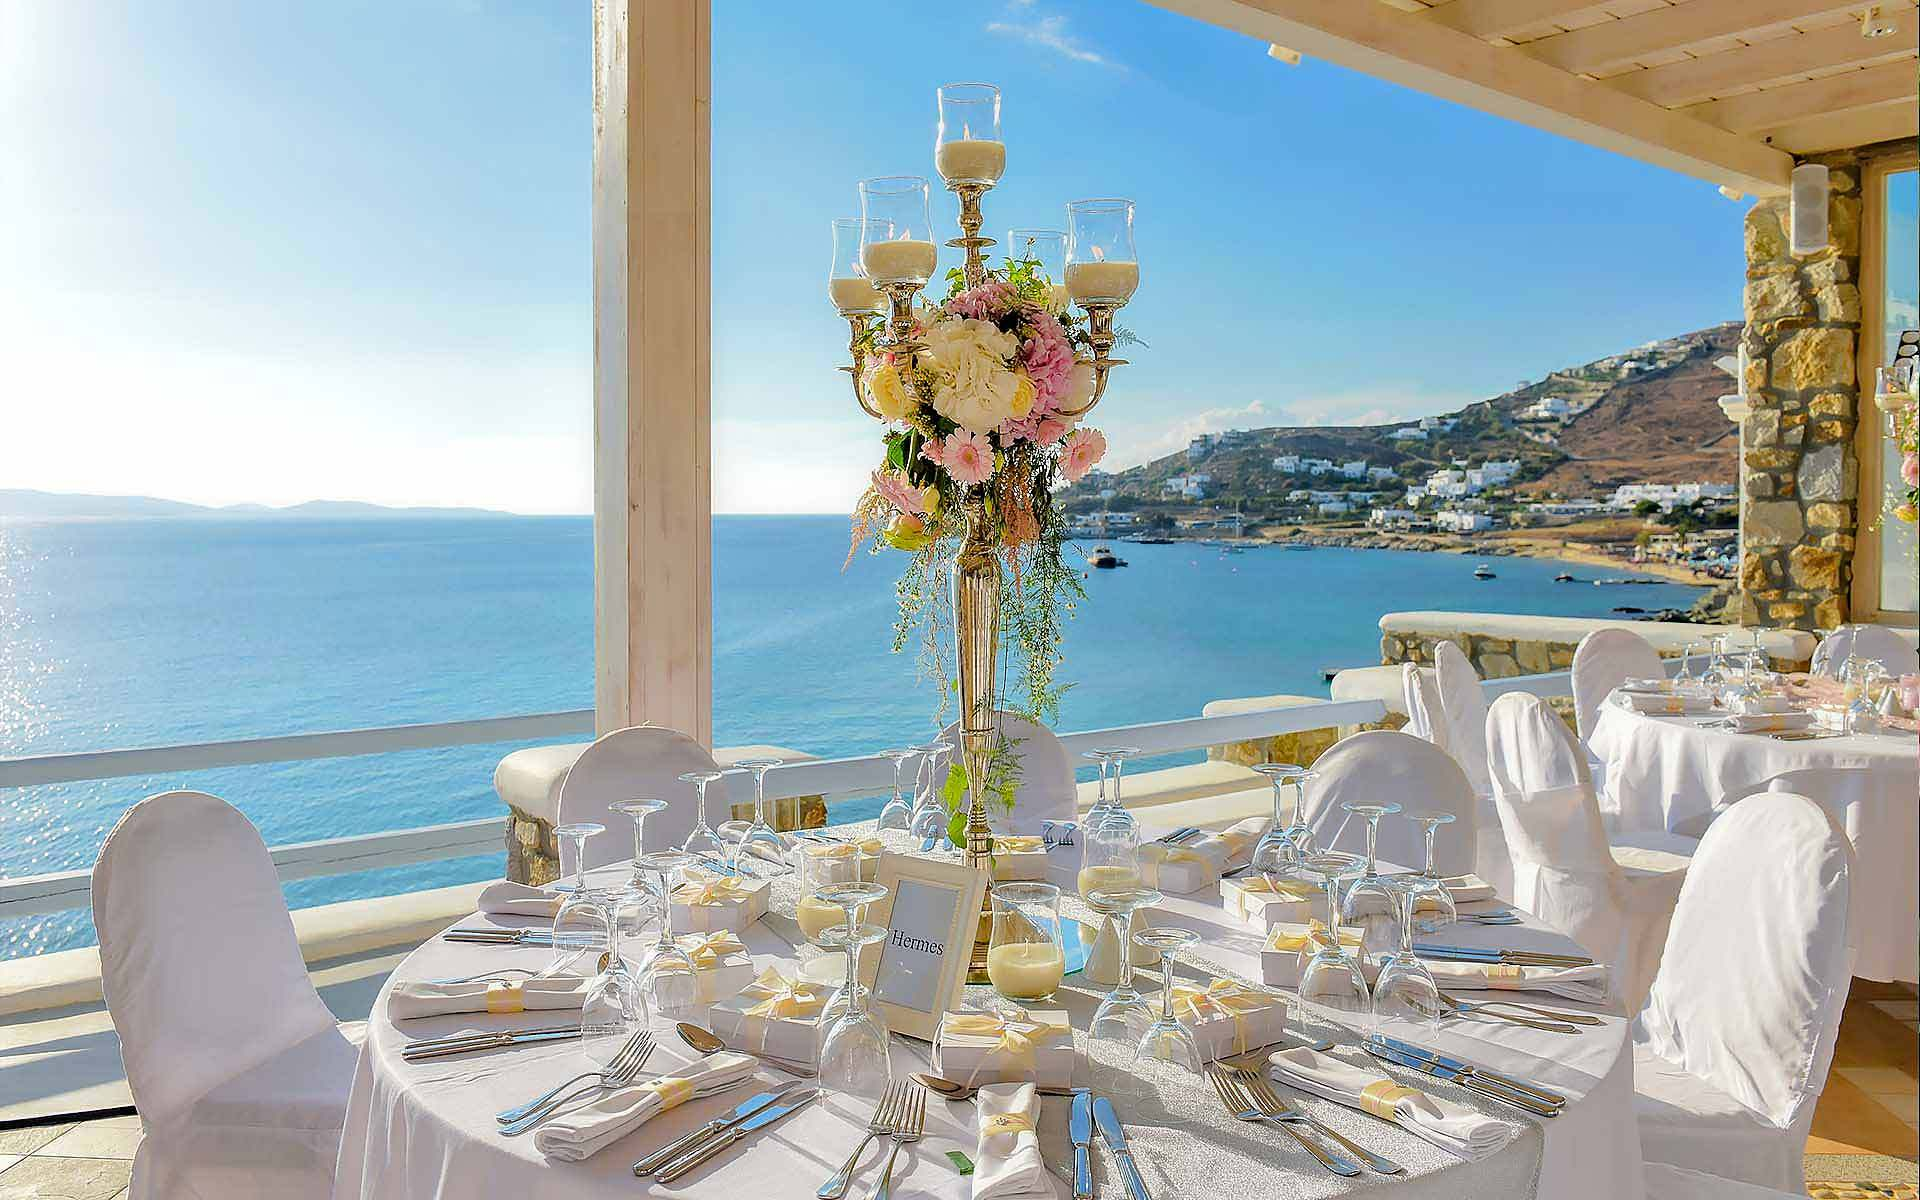 Candelabra-As-A-Centerpiece-With-The-Sea-Of-Mykonos-As-A-Background